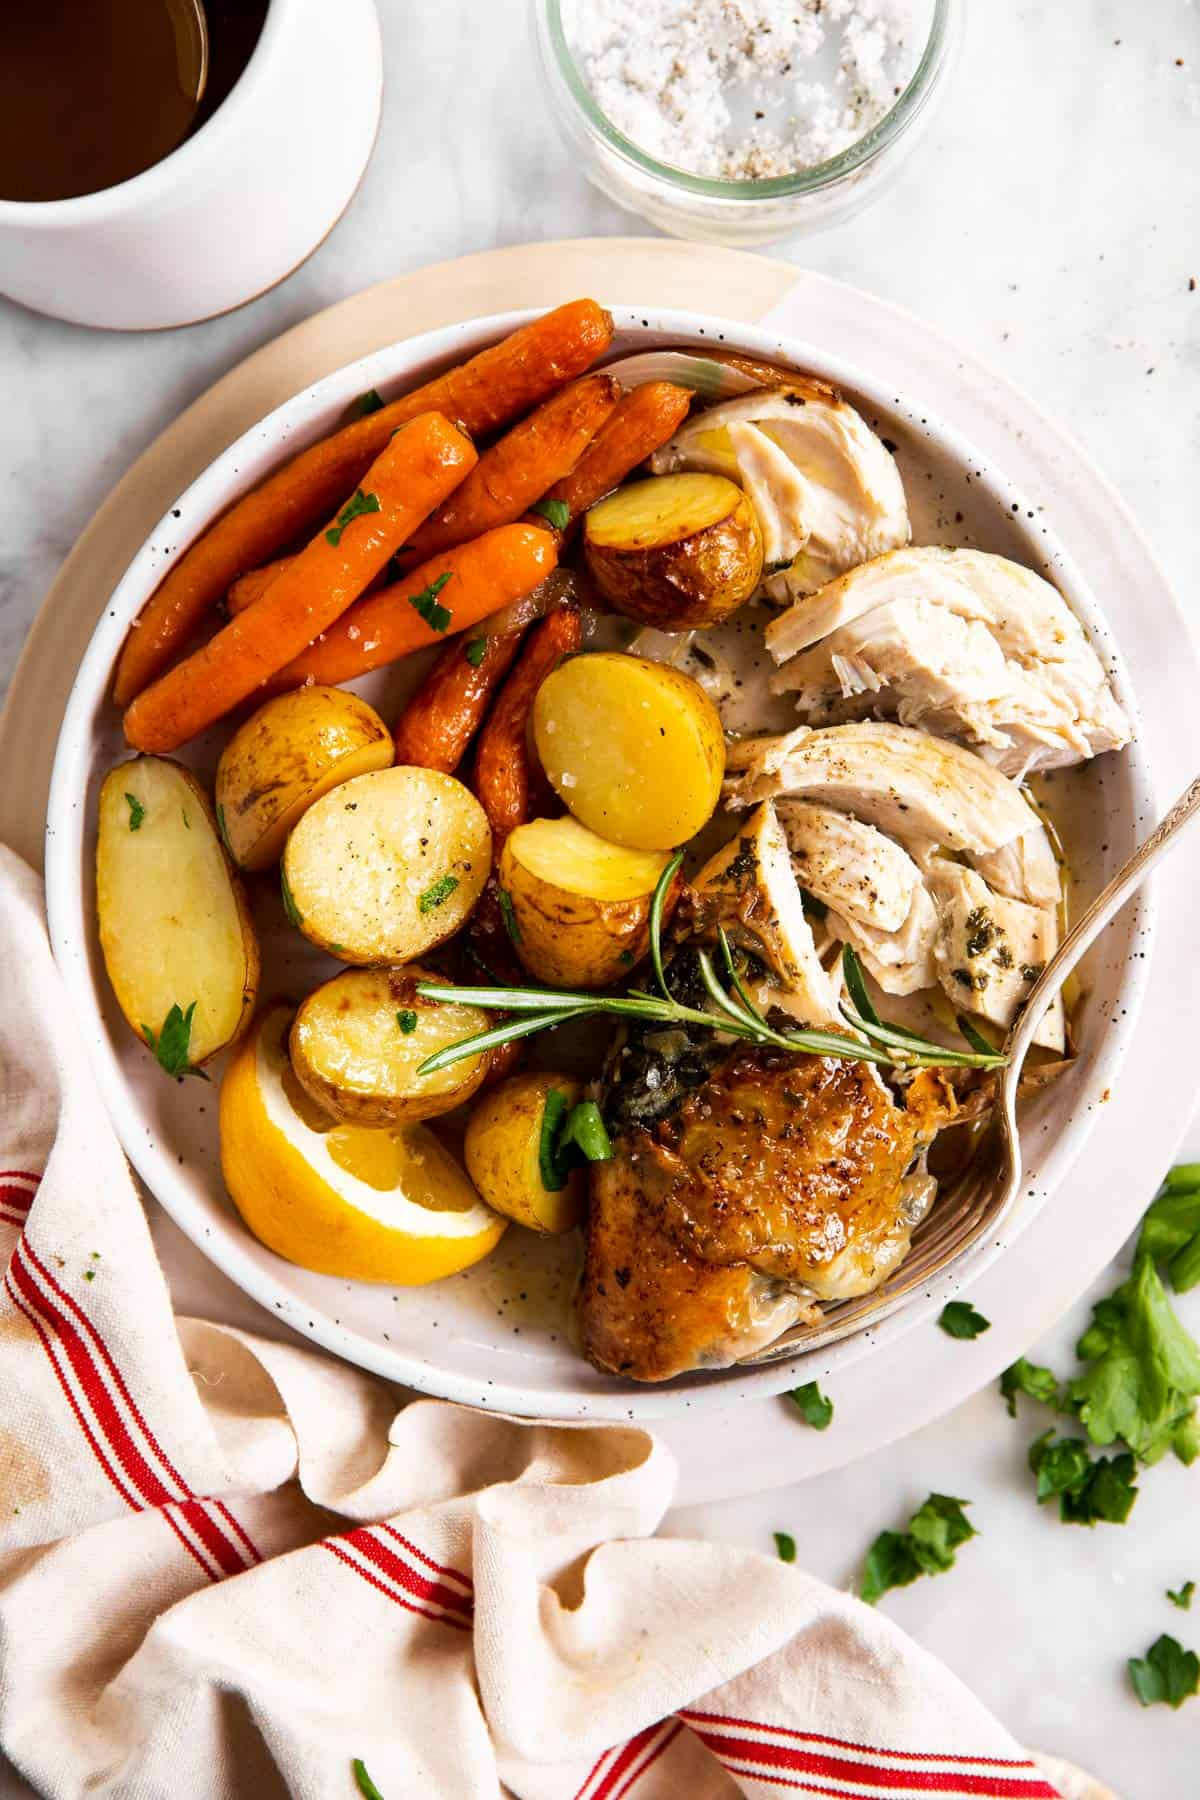 overhead view of carved chicken breast with potatoes and carrots on white plate